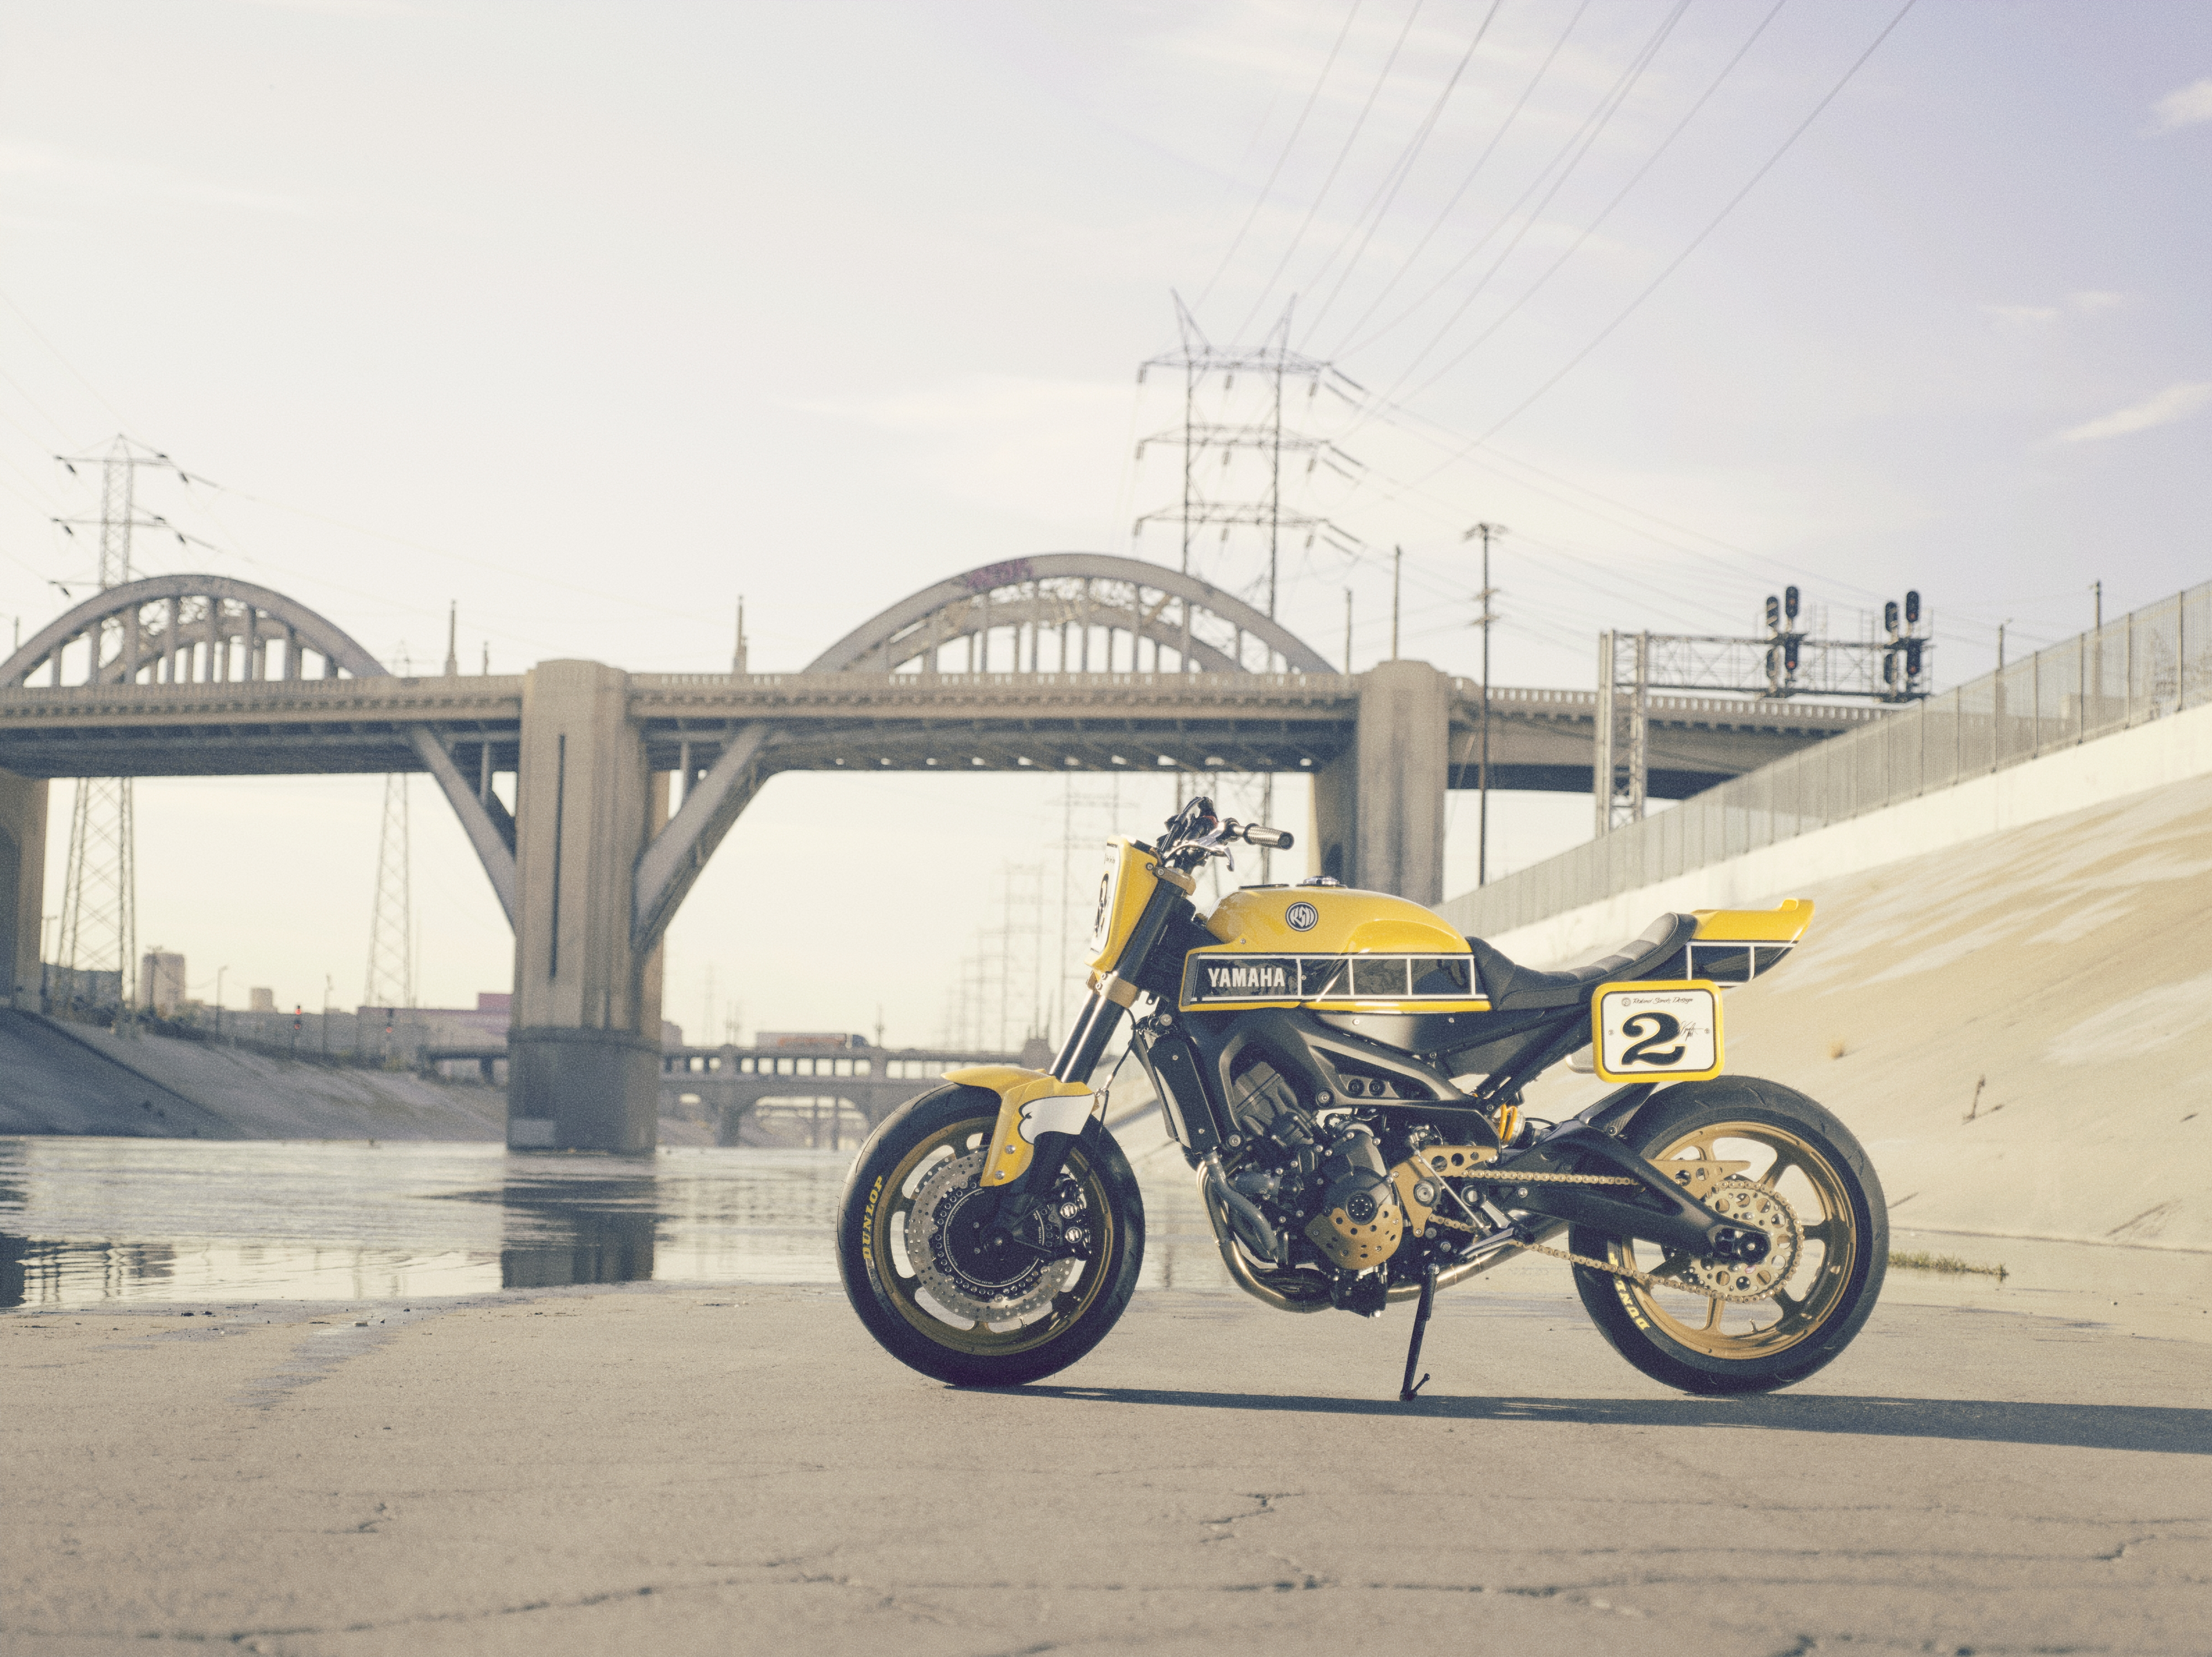 Roland Sands Faster Wasp Previews The Yamaha XSR900